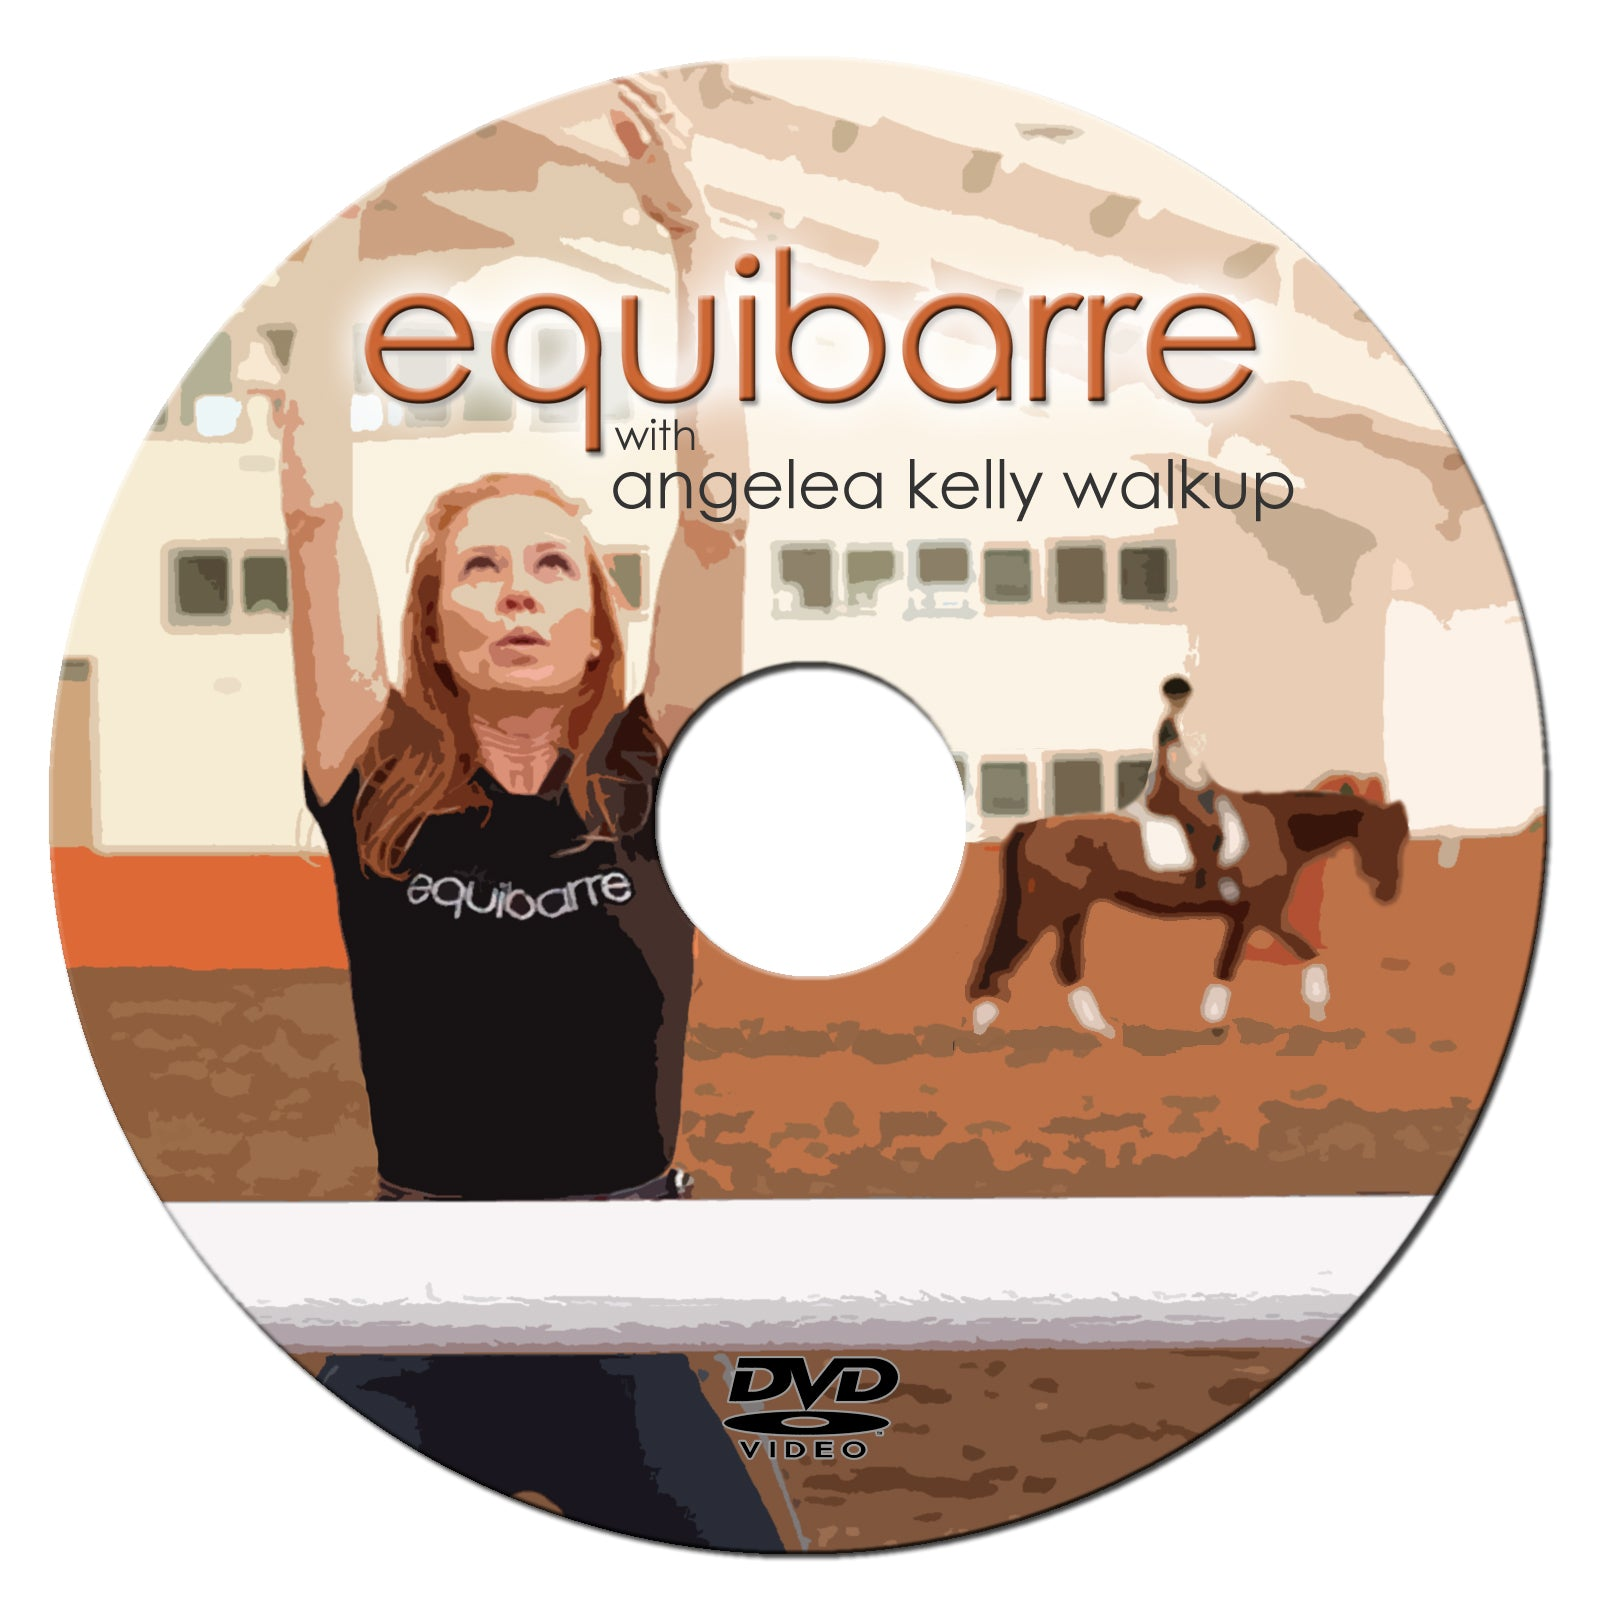 Image of the Equibarre exercise DVD